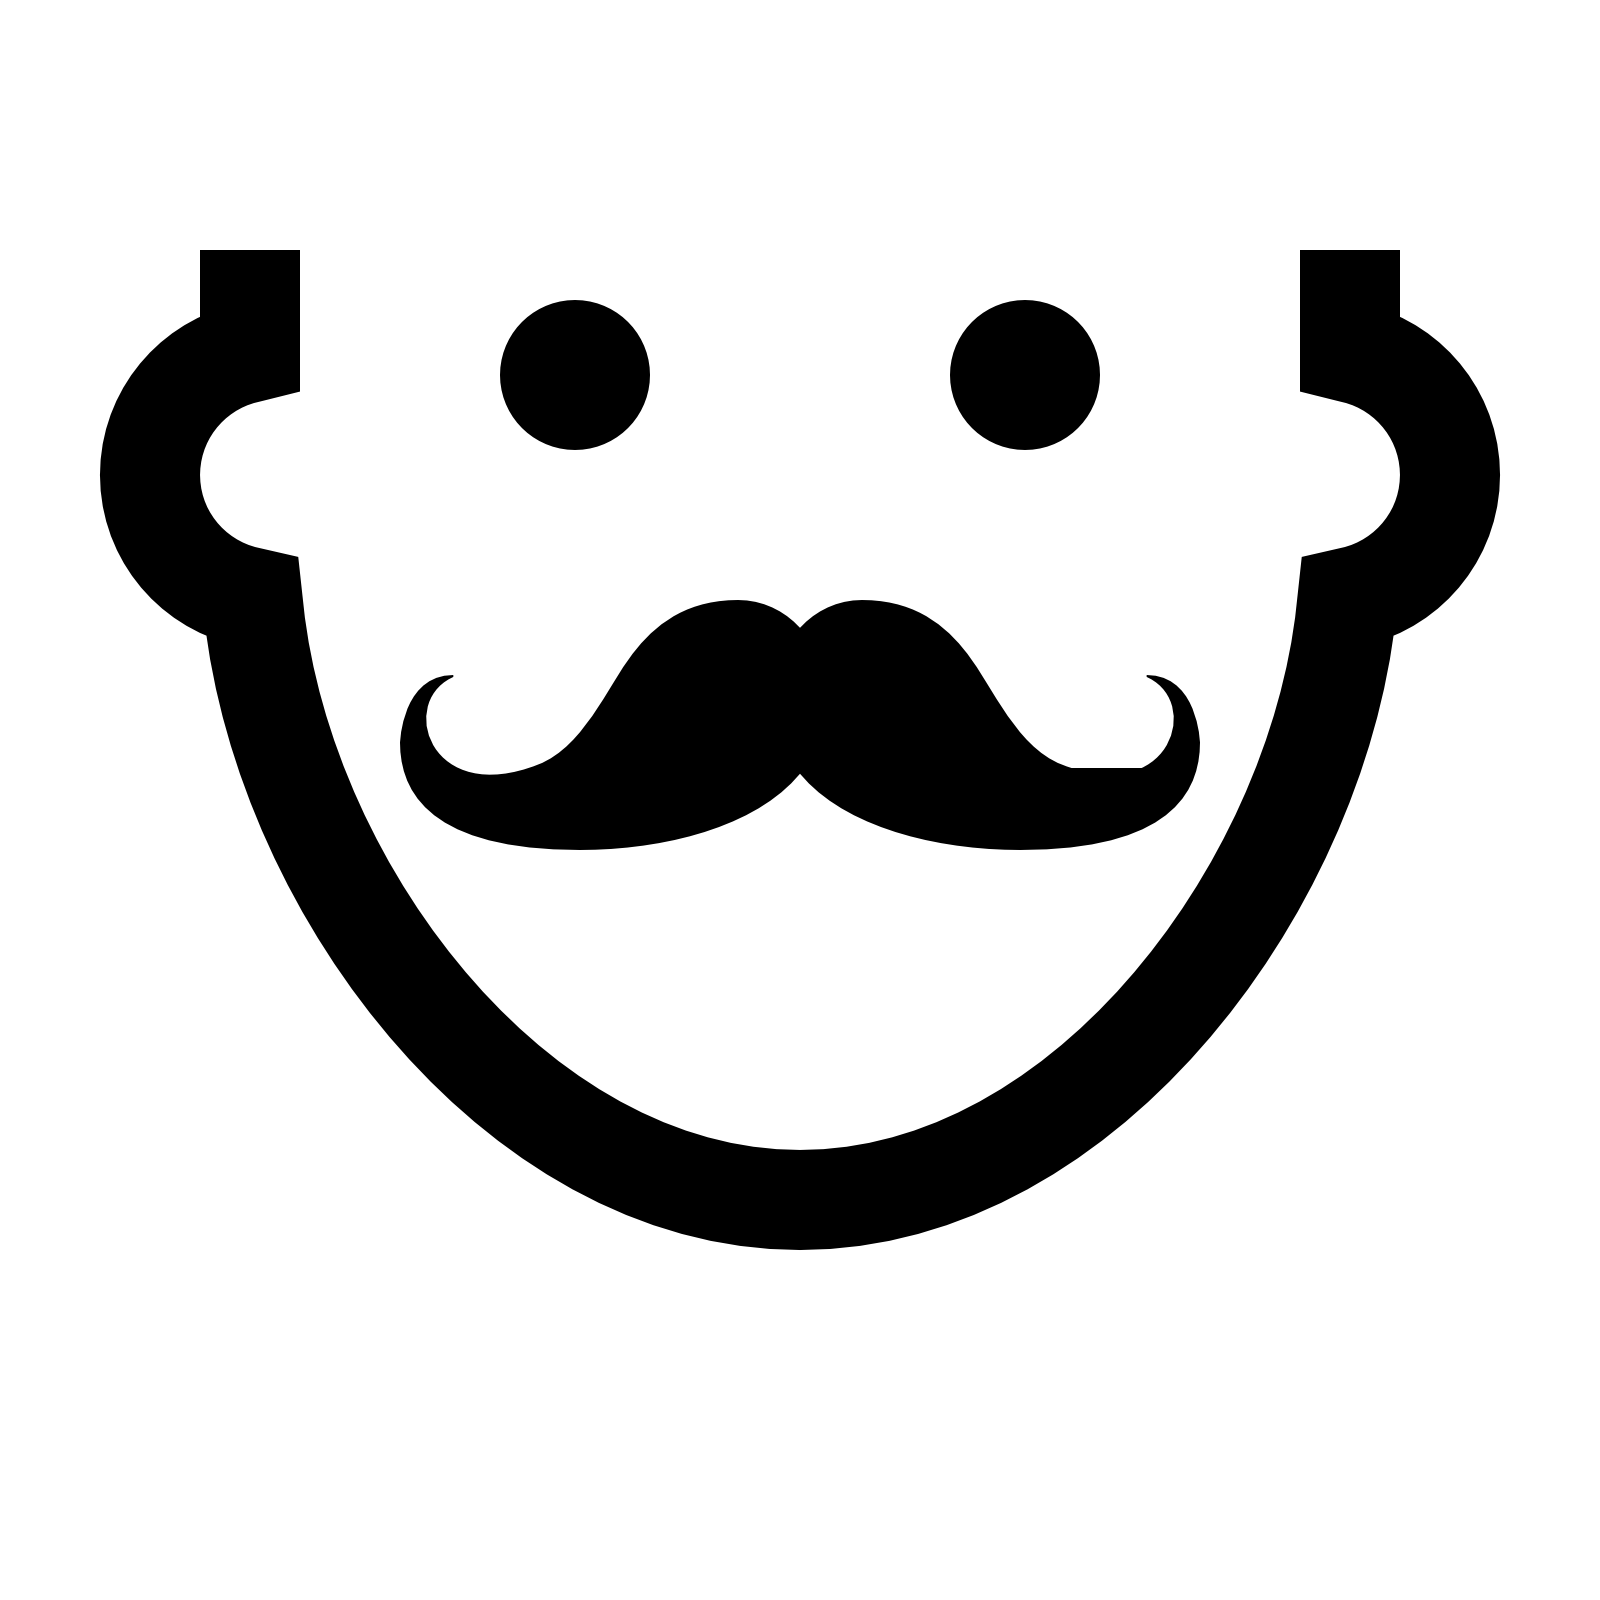 mustache icon download icons #15060